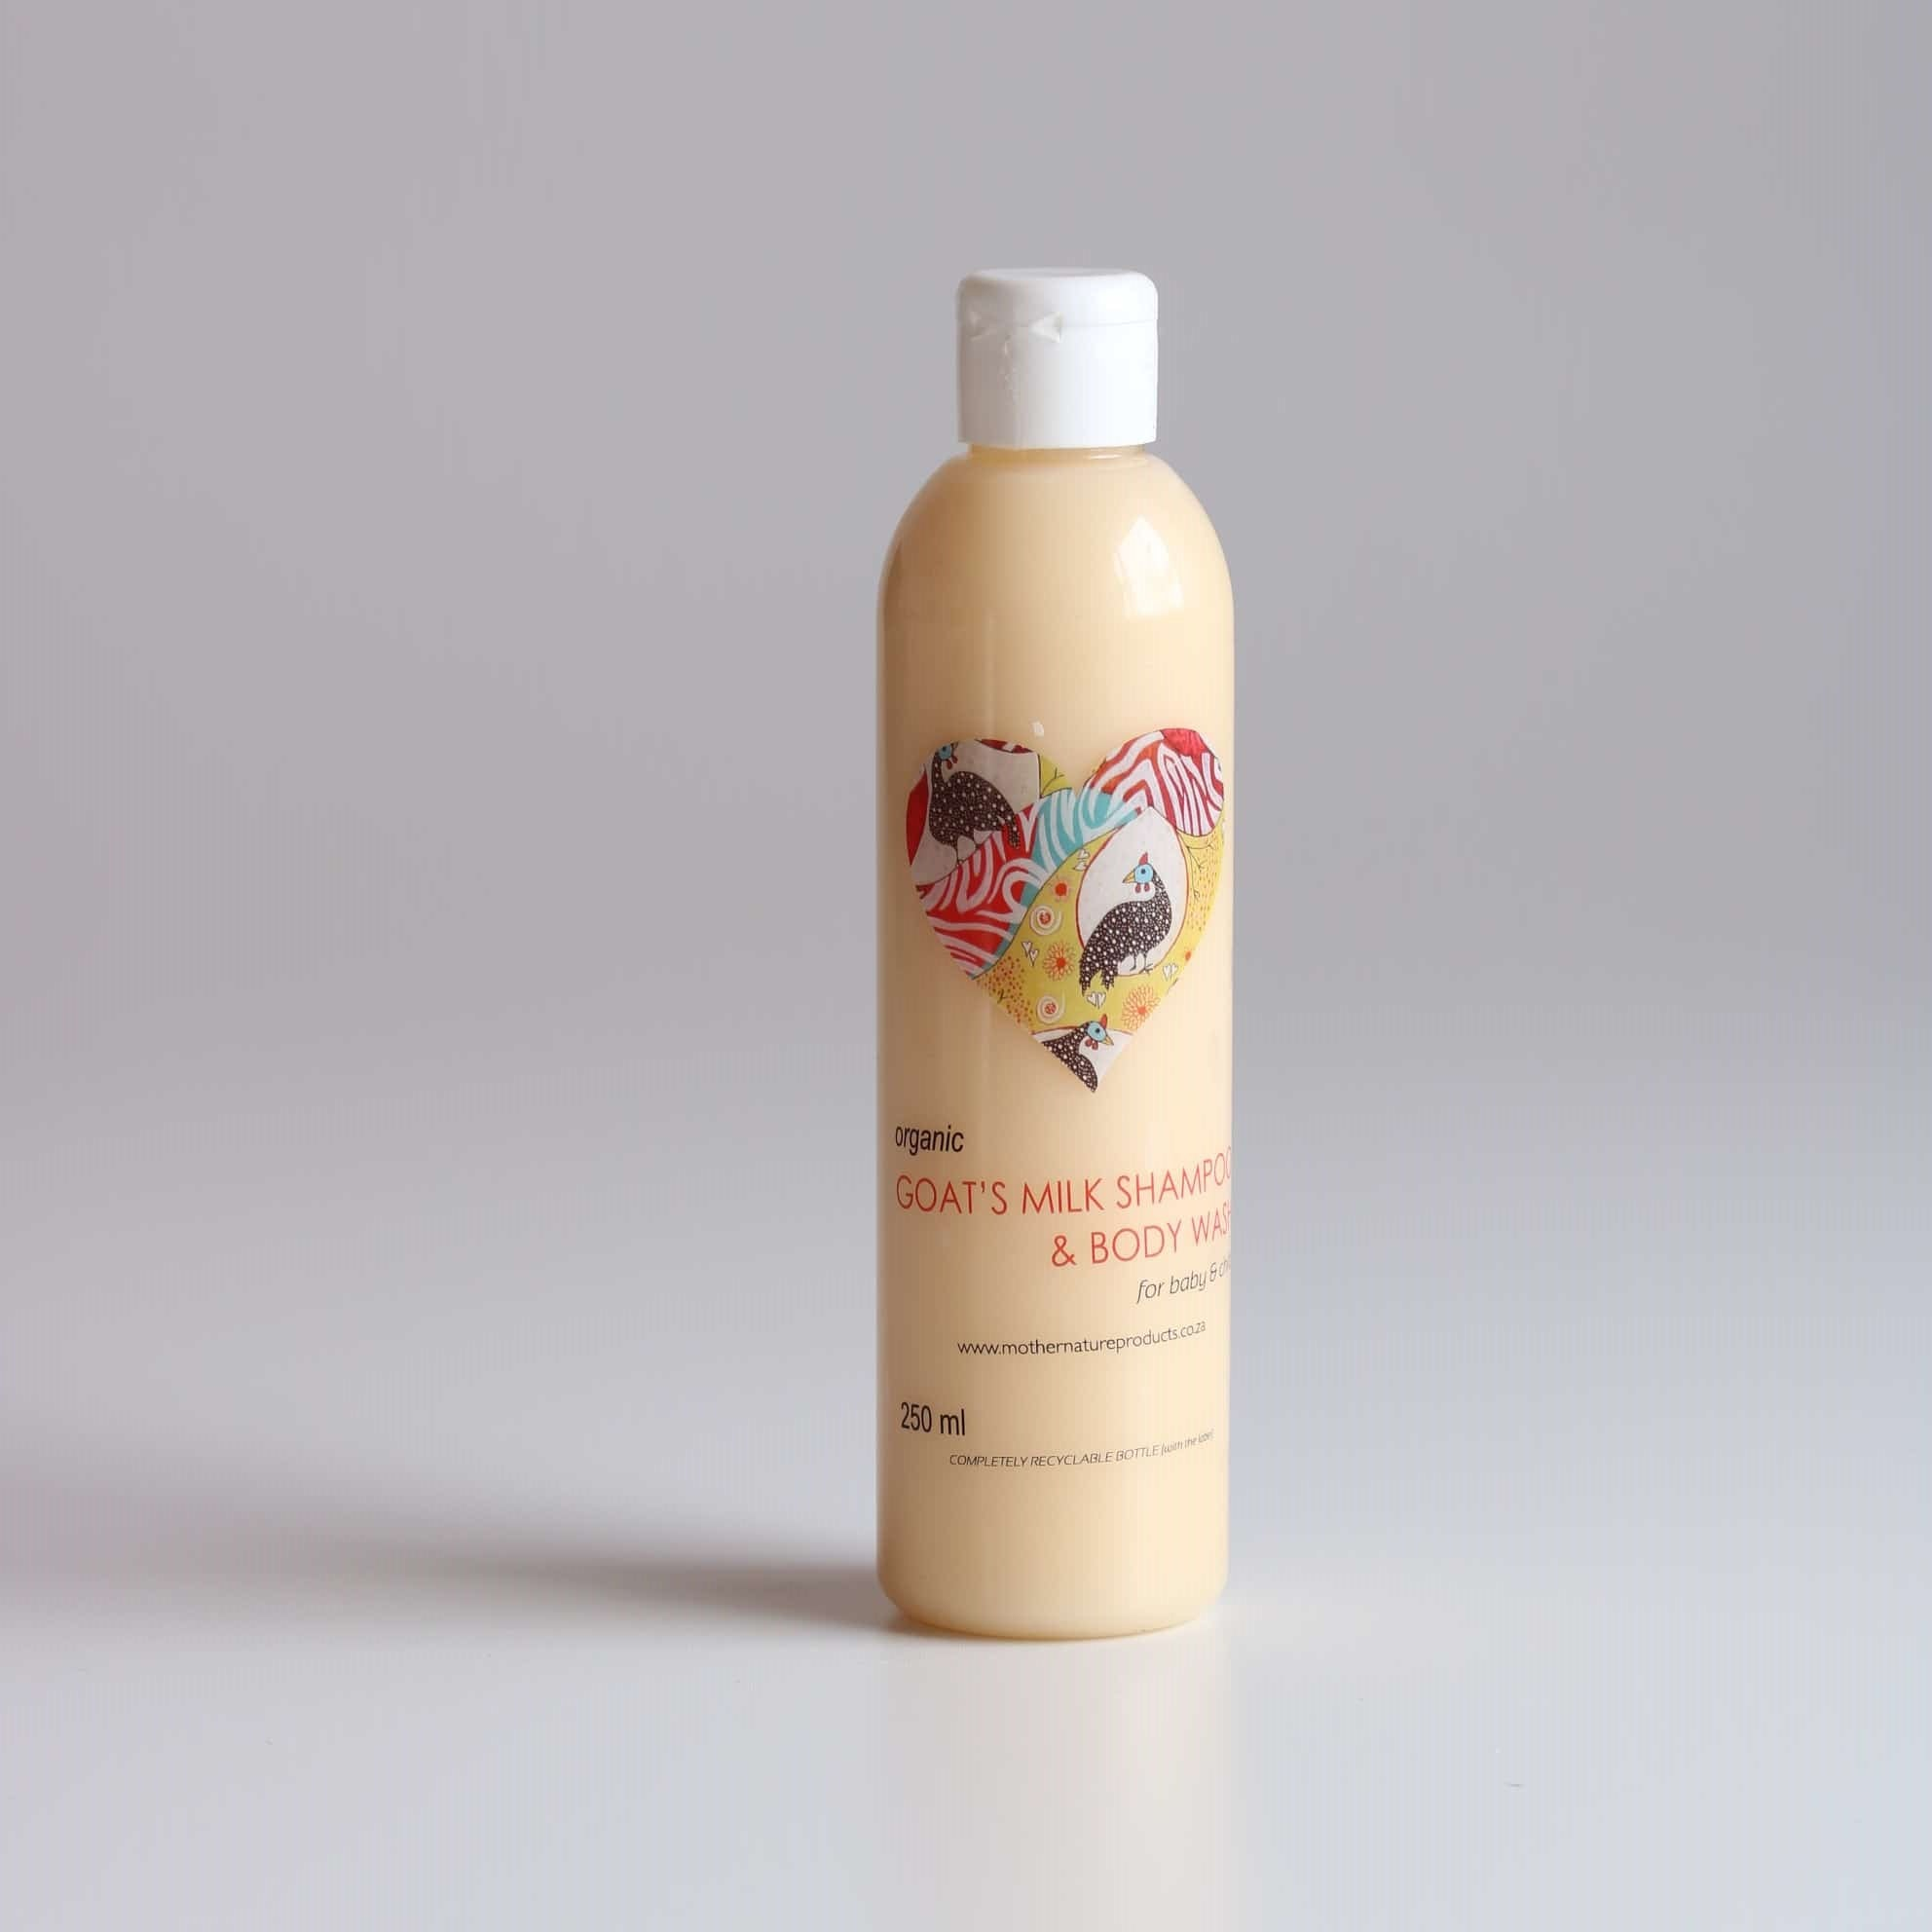 Organic Goats Milk Shampoo & Body Wash